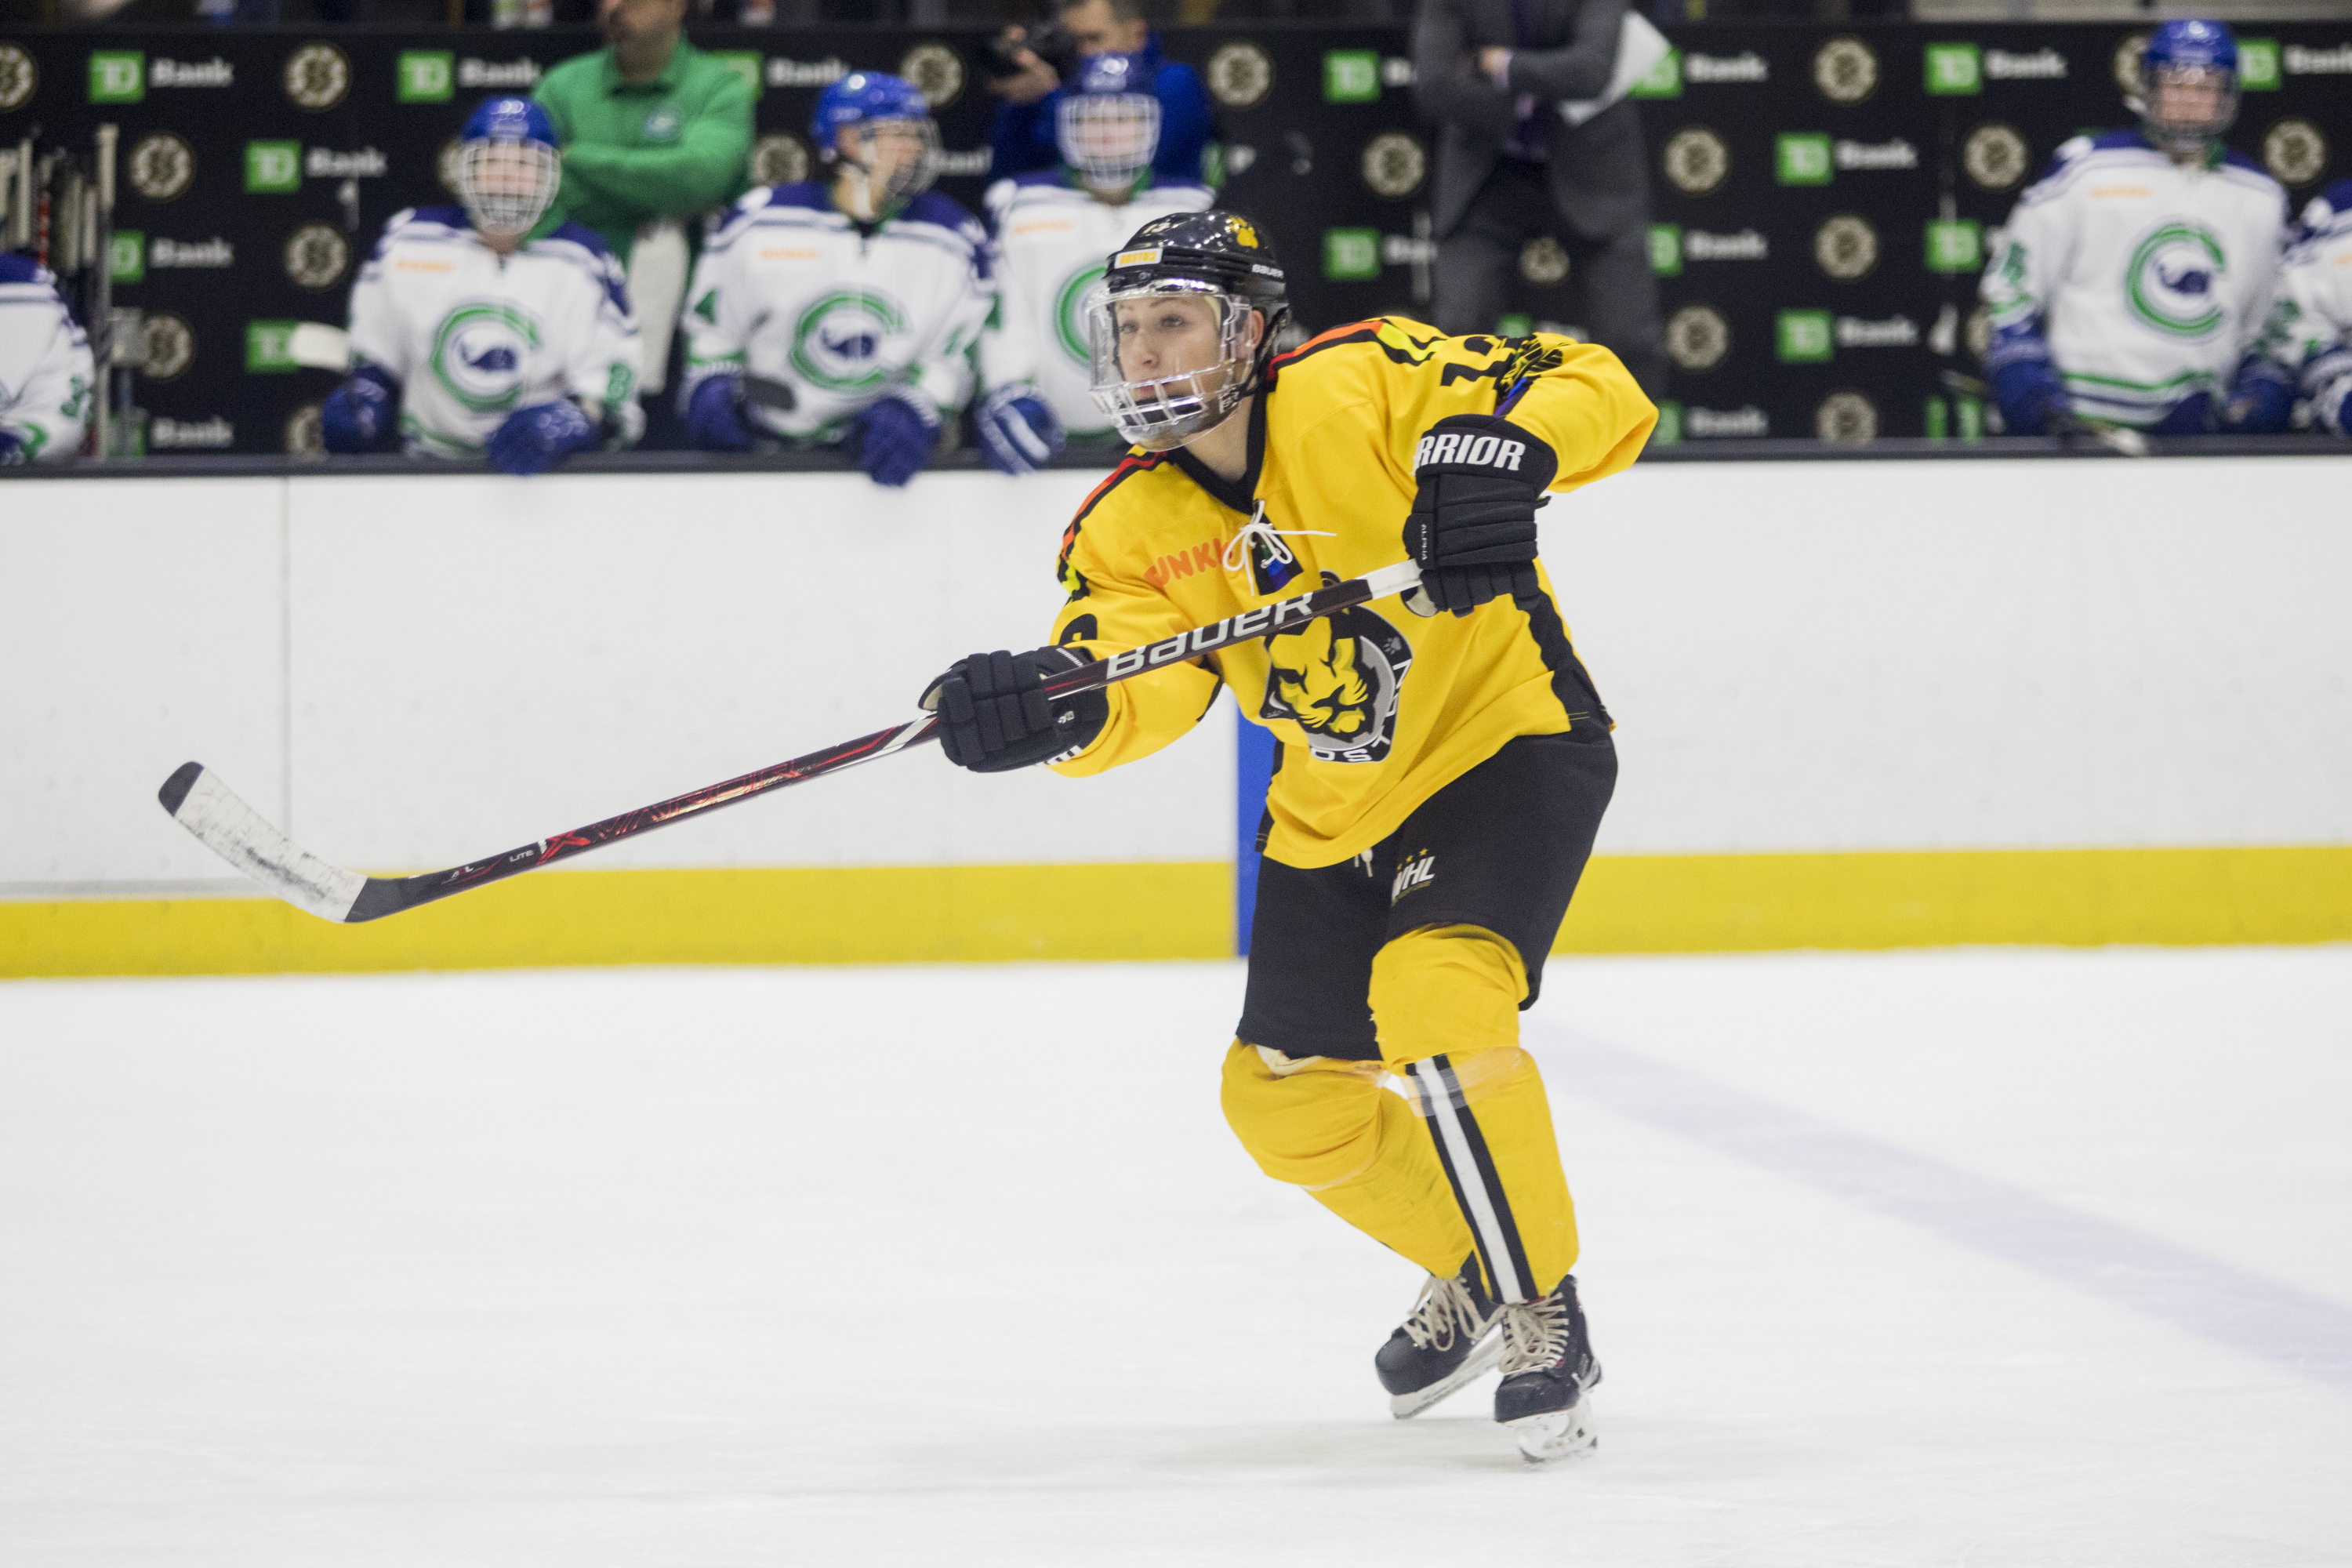 Boston Pride focusing on hockey, NWHL success after tumultuous